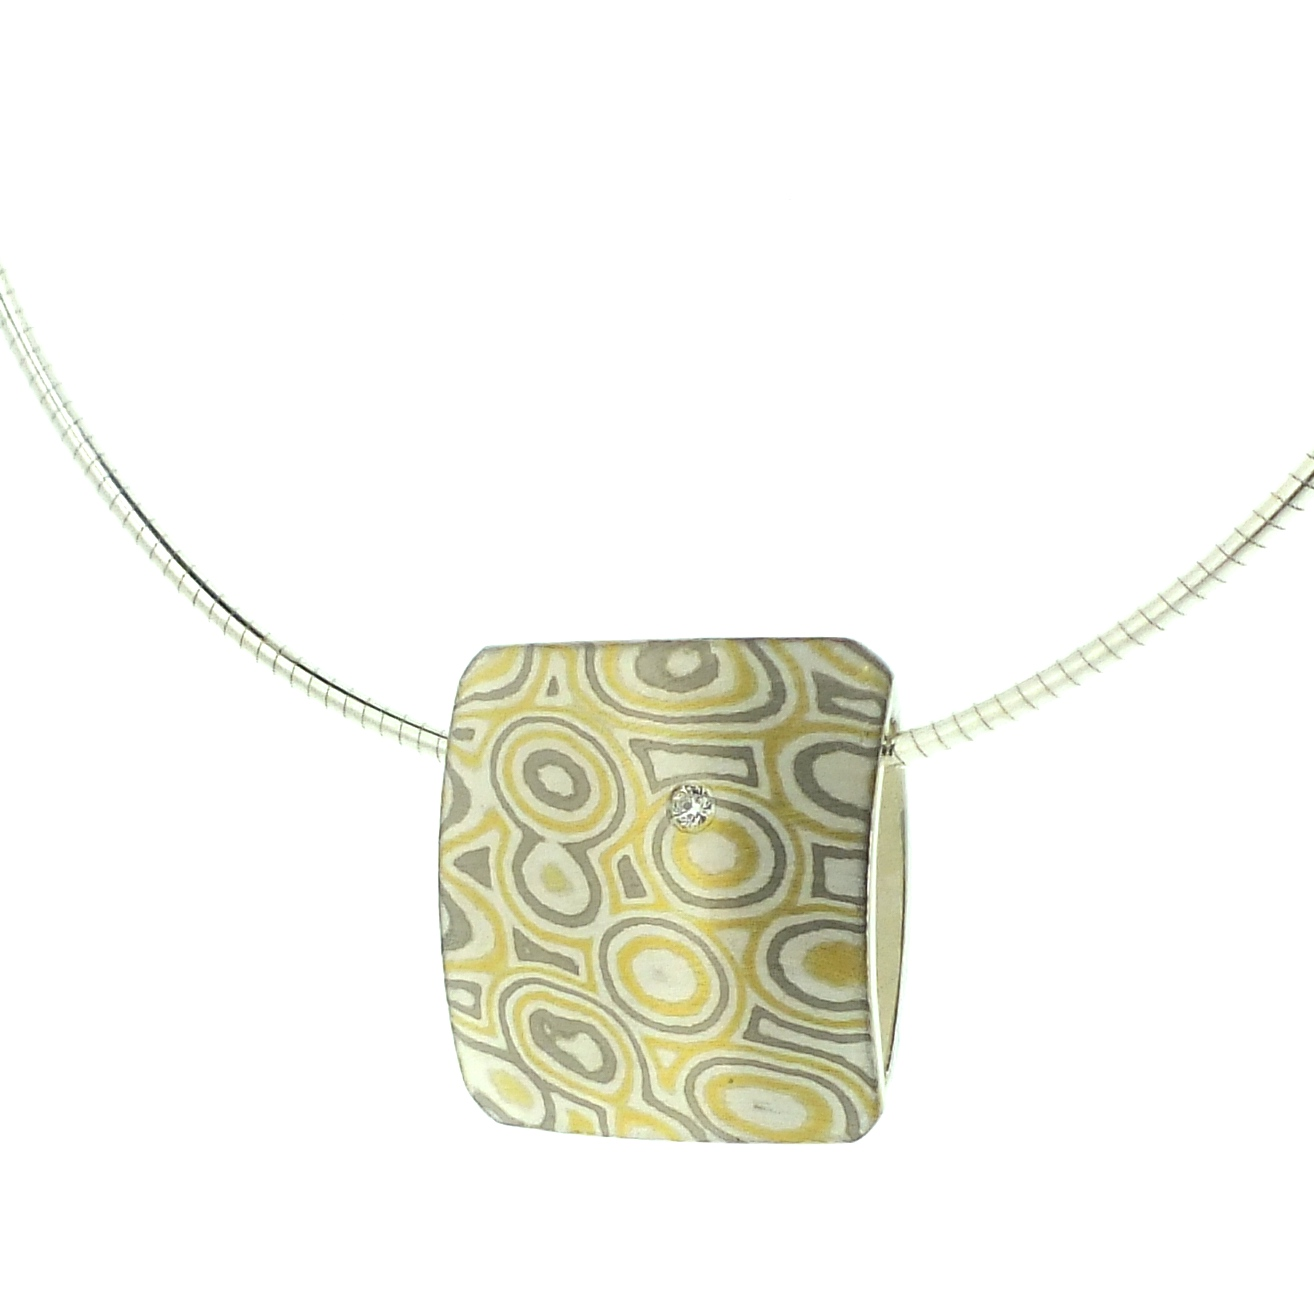 22k gold, 18k white gold and silver mokume gane square pillow pendant with diamond detail